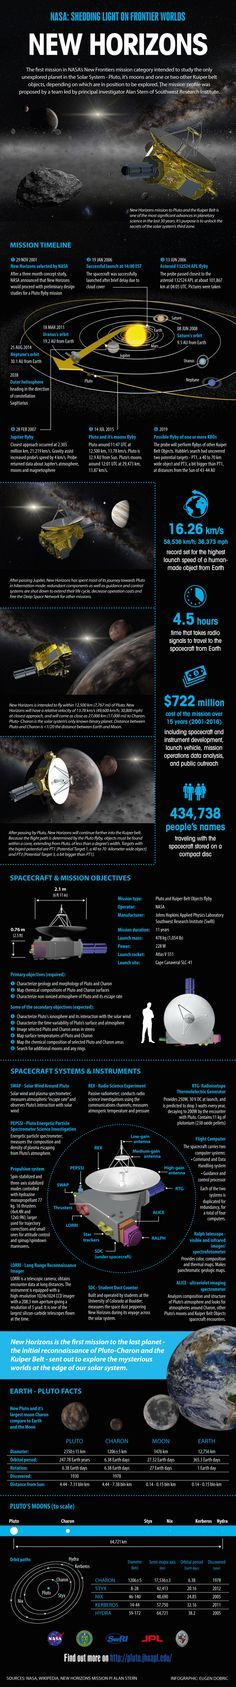 New Horizons Space Mission Infographic